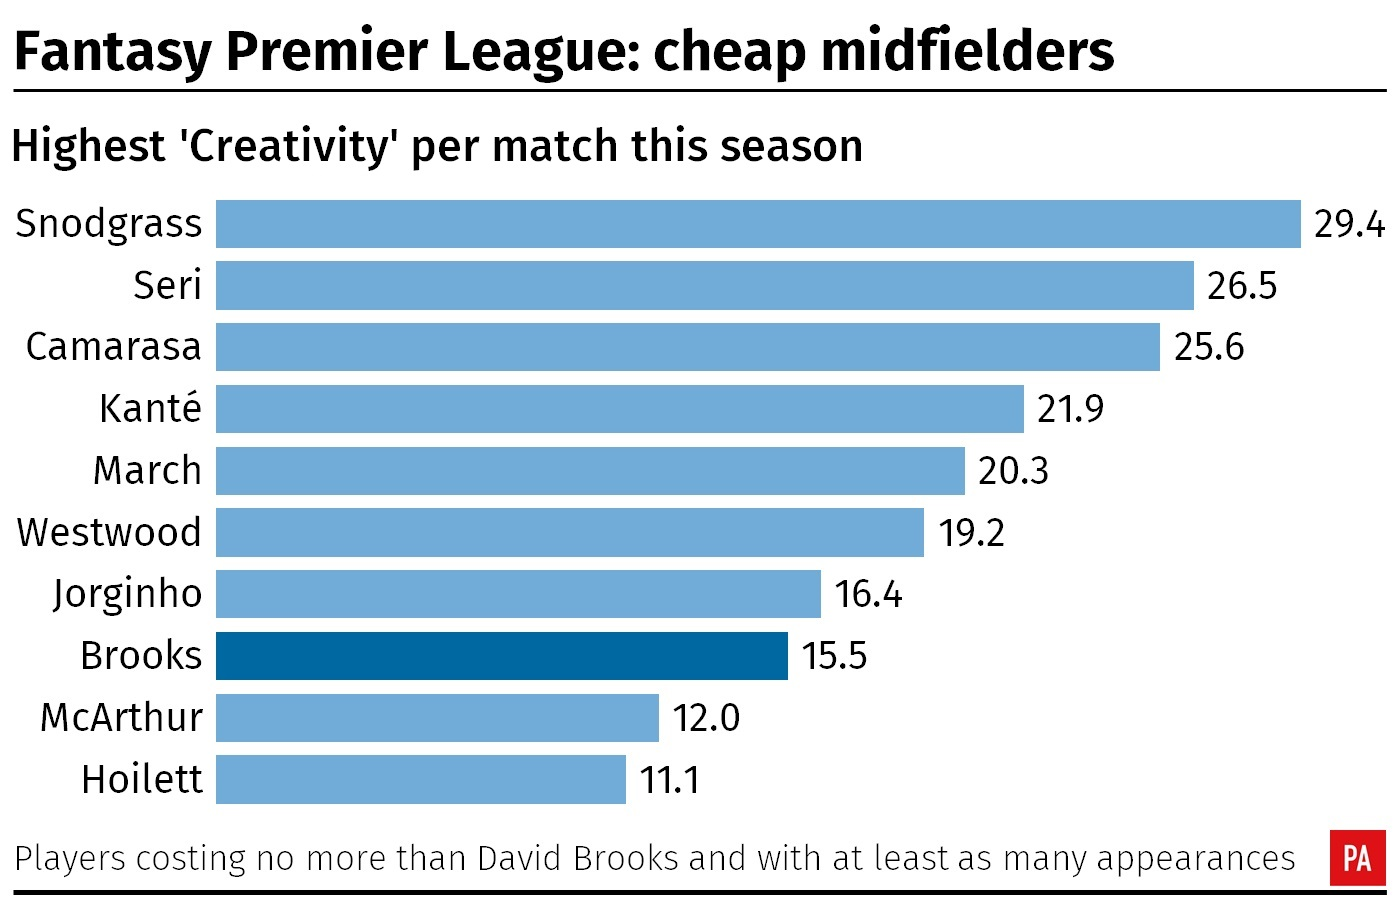 A table showing Fantasy Premier League midfielders' 'Creativity' per match this season